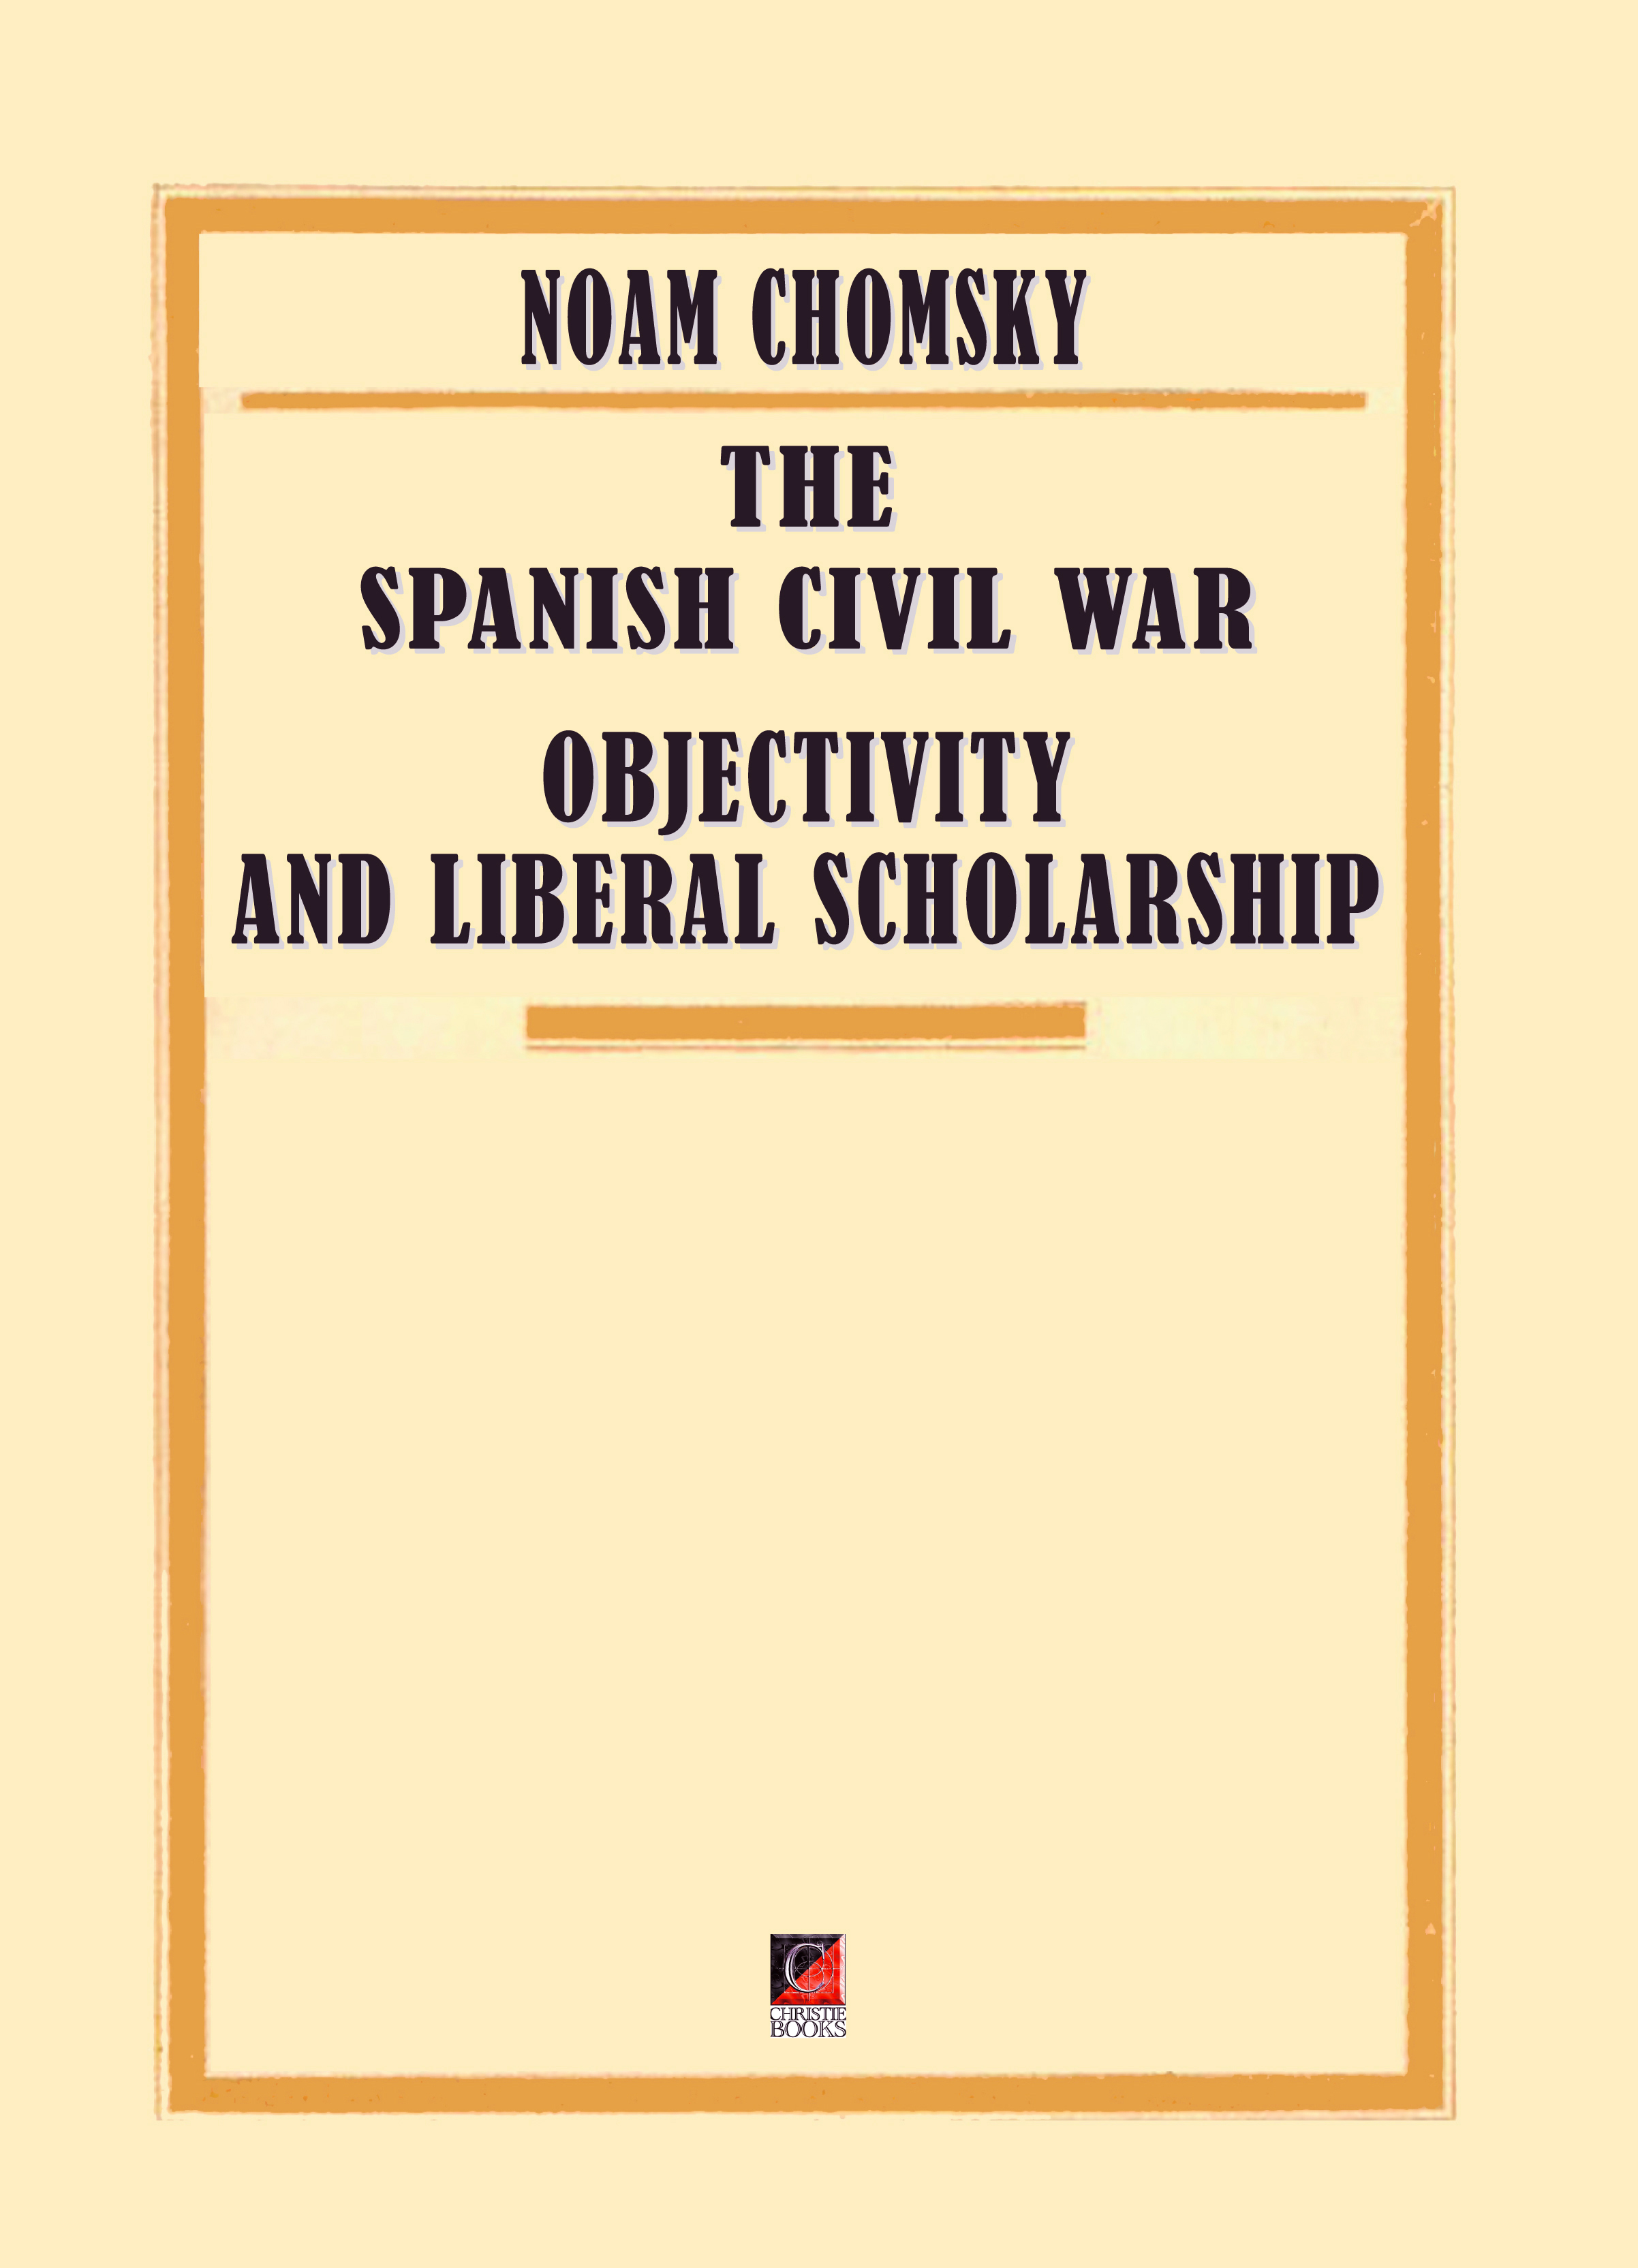 THE SPANISH CIVIL WAR — Objectivity and Liberal Scholarship